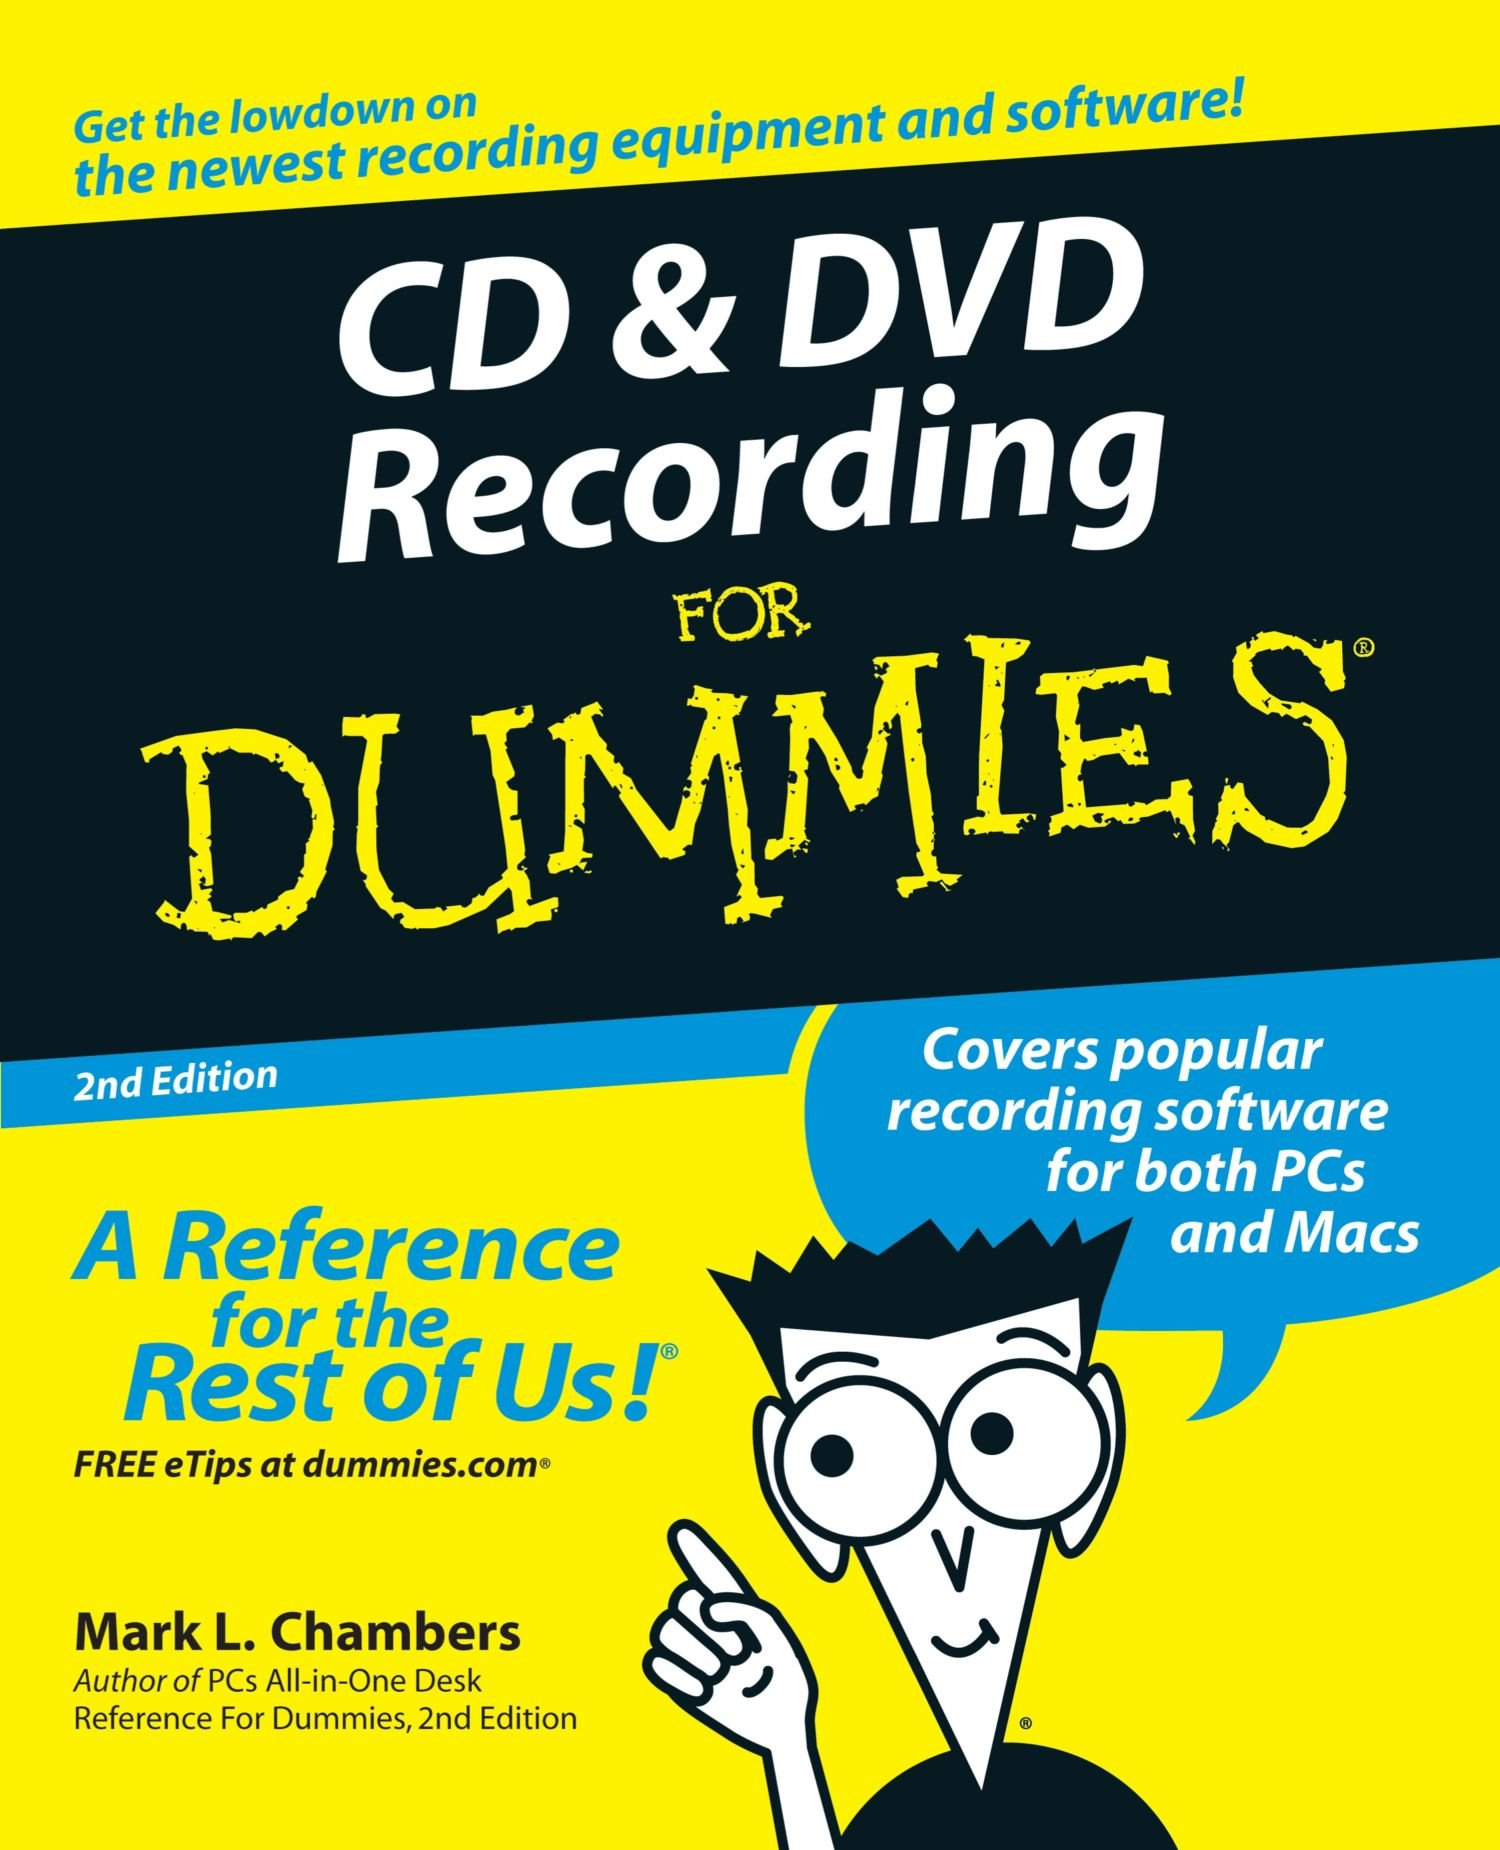 CD and DVD Recording For Dummies: Mark L. Chambers: 9780764559563:  Amazon.com: Books